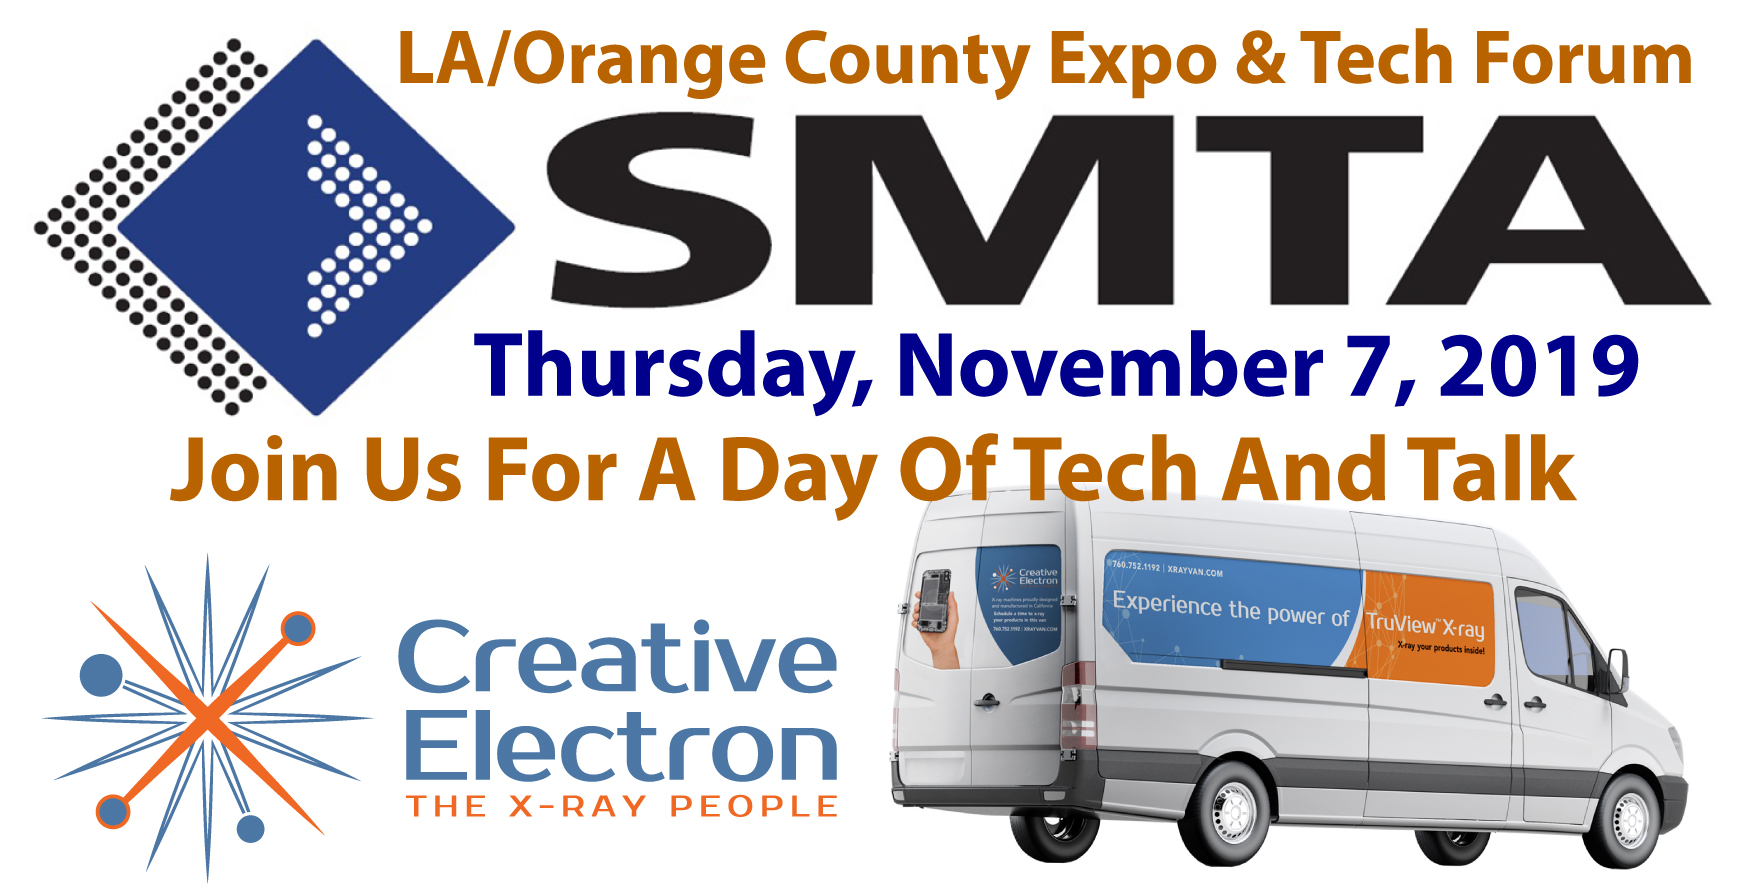 LA/Orange County Expo & Tech Forum Thursday, November 7, 2019